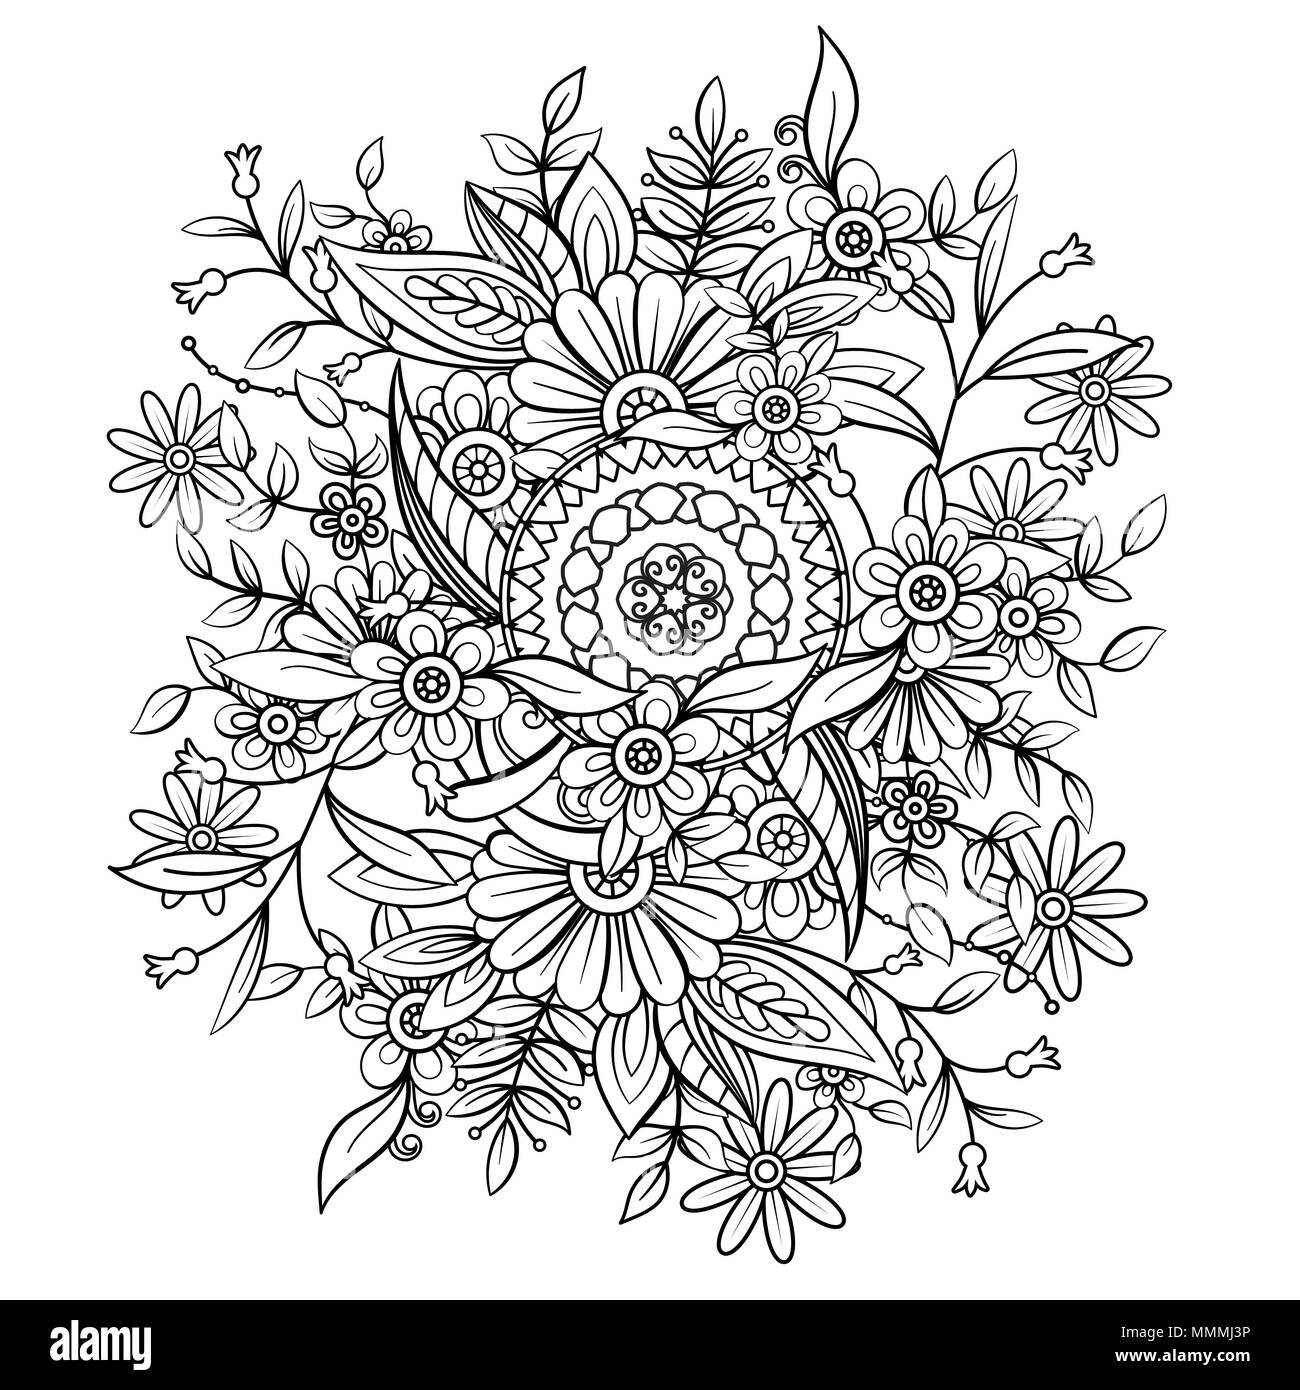 Floral Pattern In Black And White Adult Coloring Book Page With Flowers Mandala Art Therapy Anti Stress Hand Drawn Vector Illustration